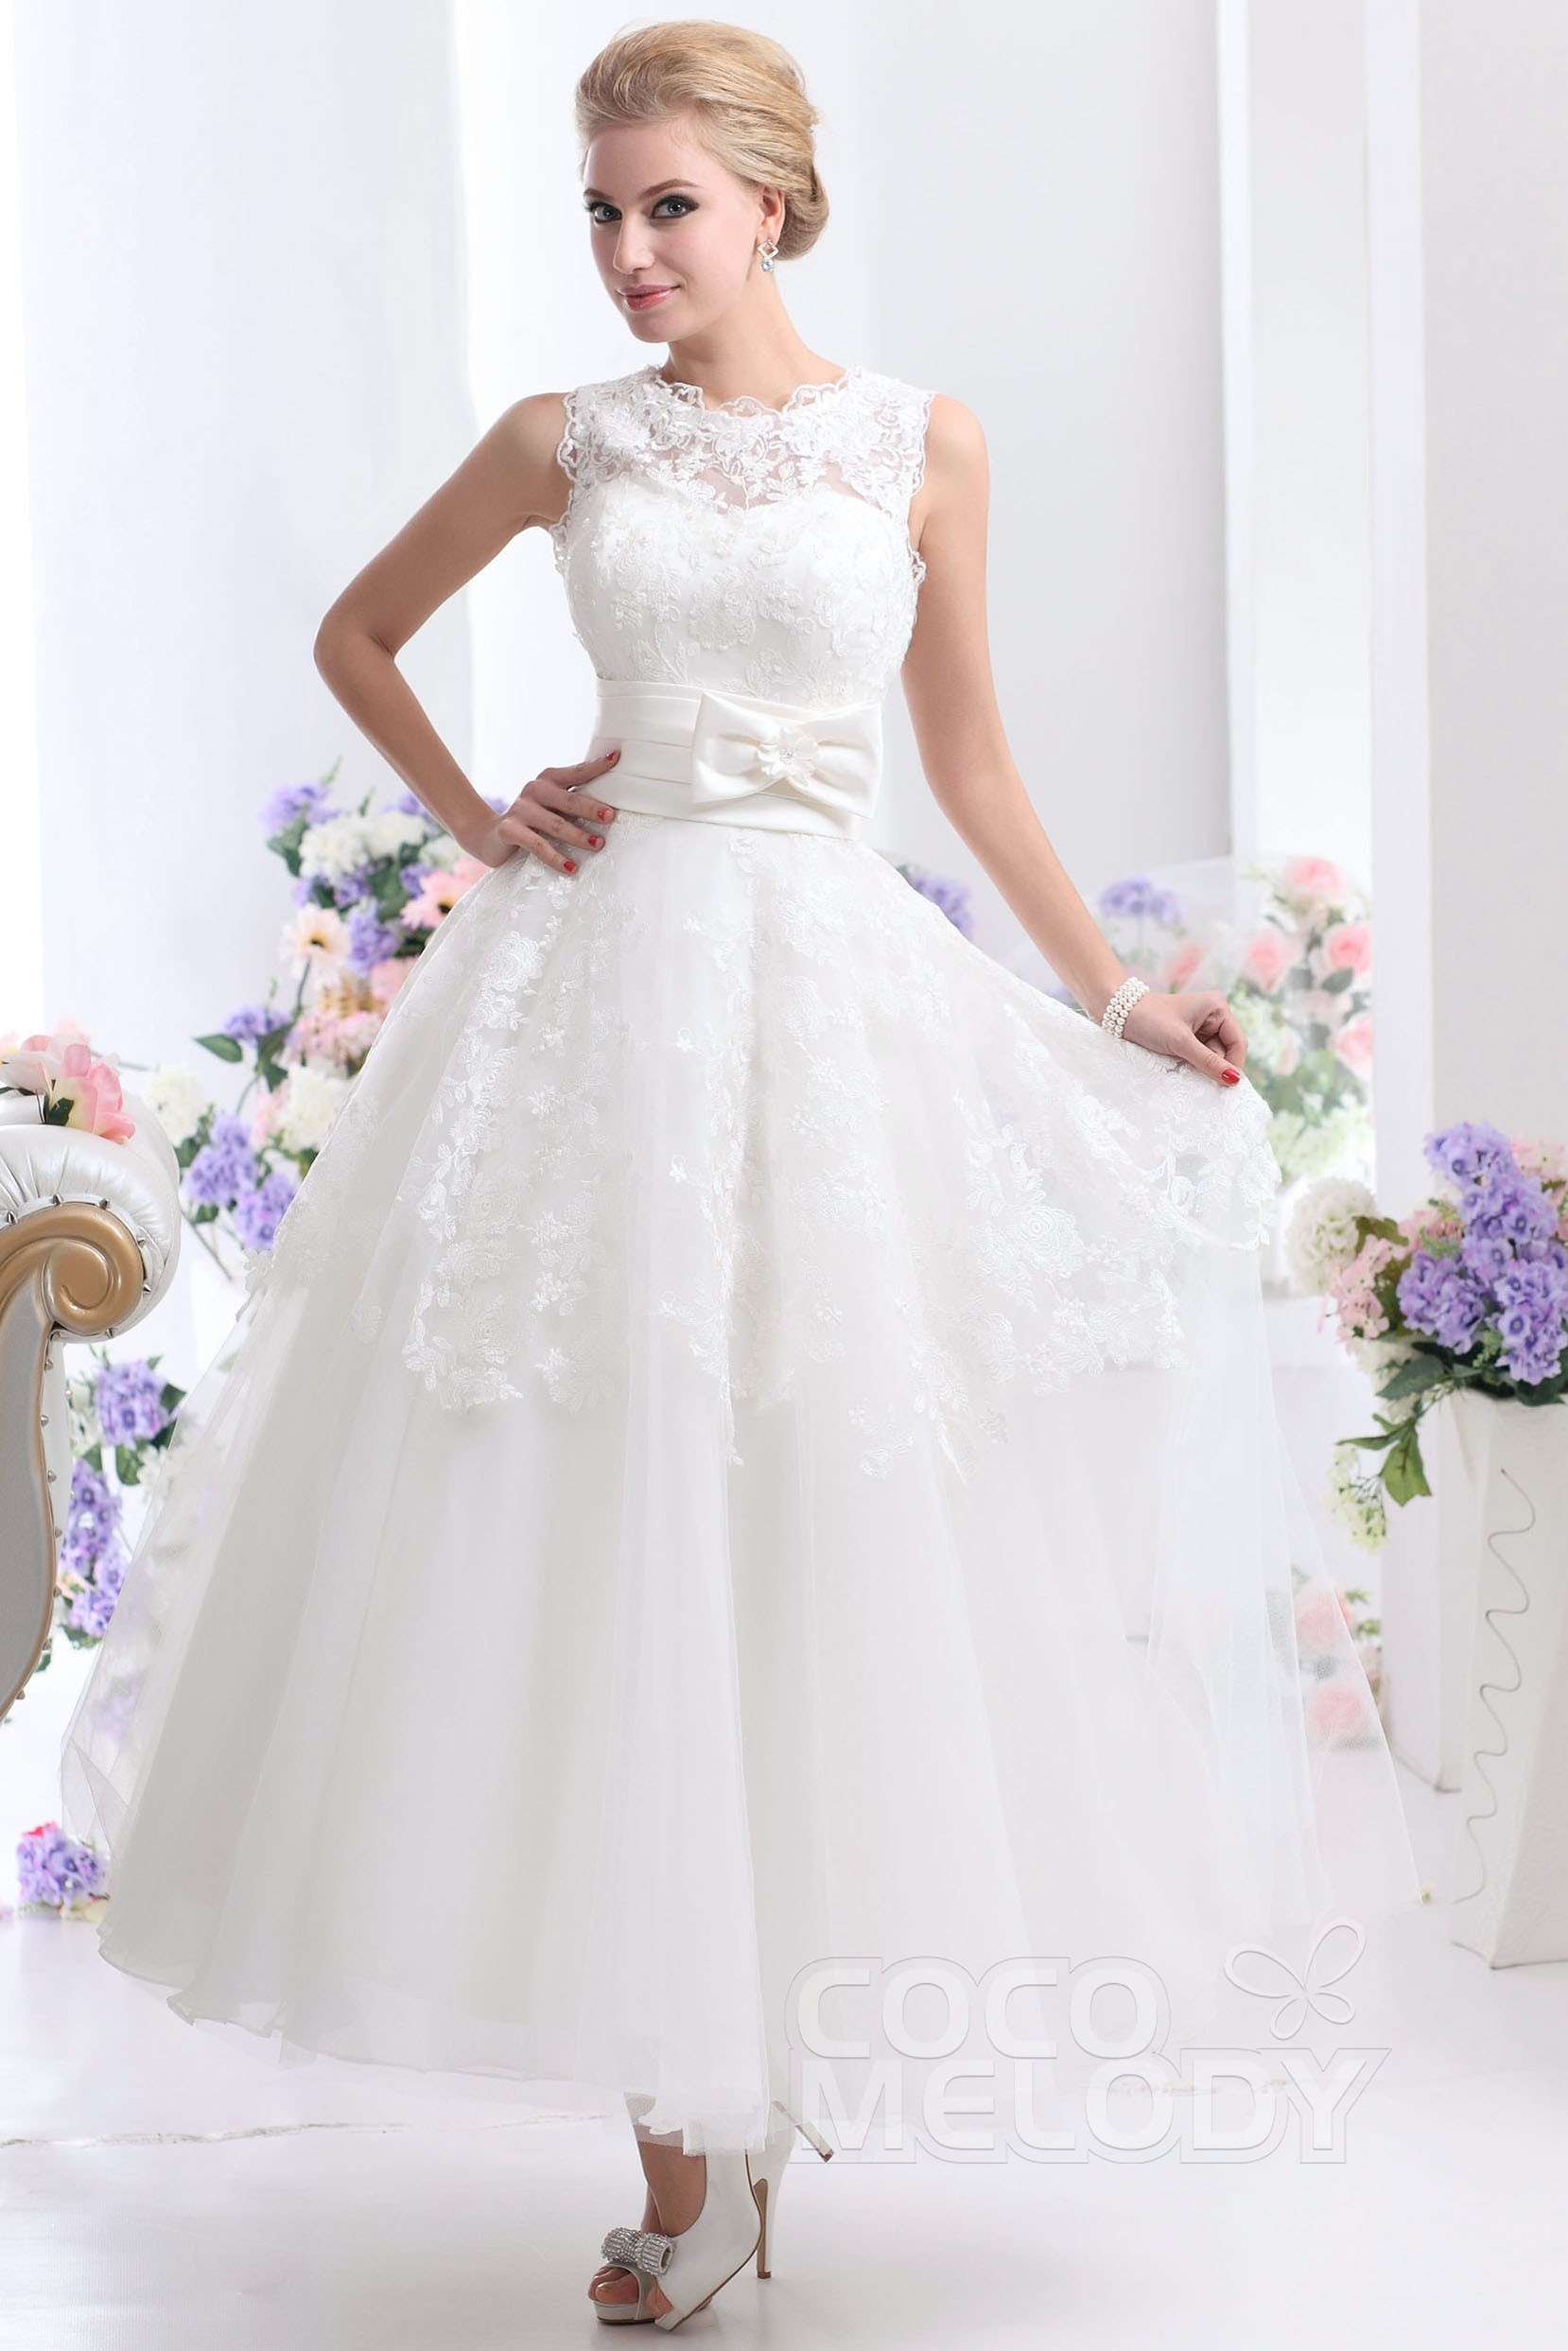 A-Line Ankle Length Tulle Lace Wedding Dress CWZA14001 | Cocomelody